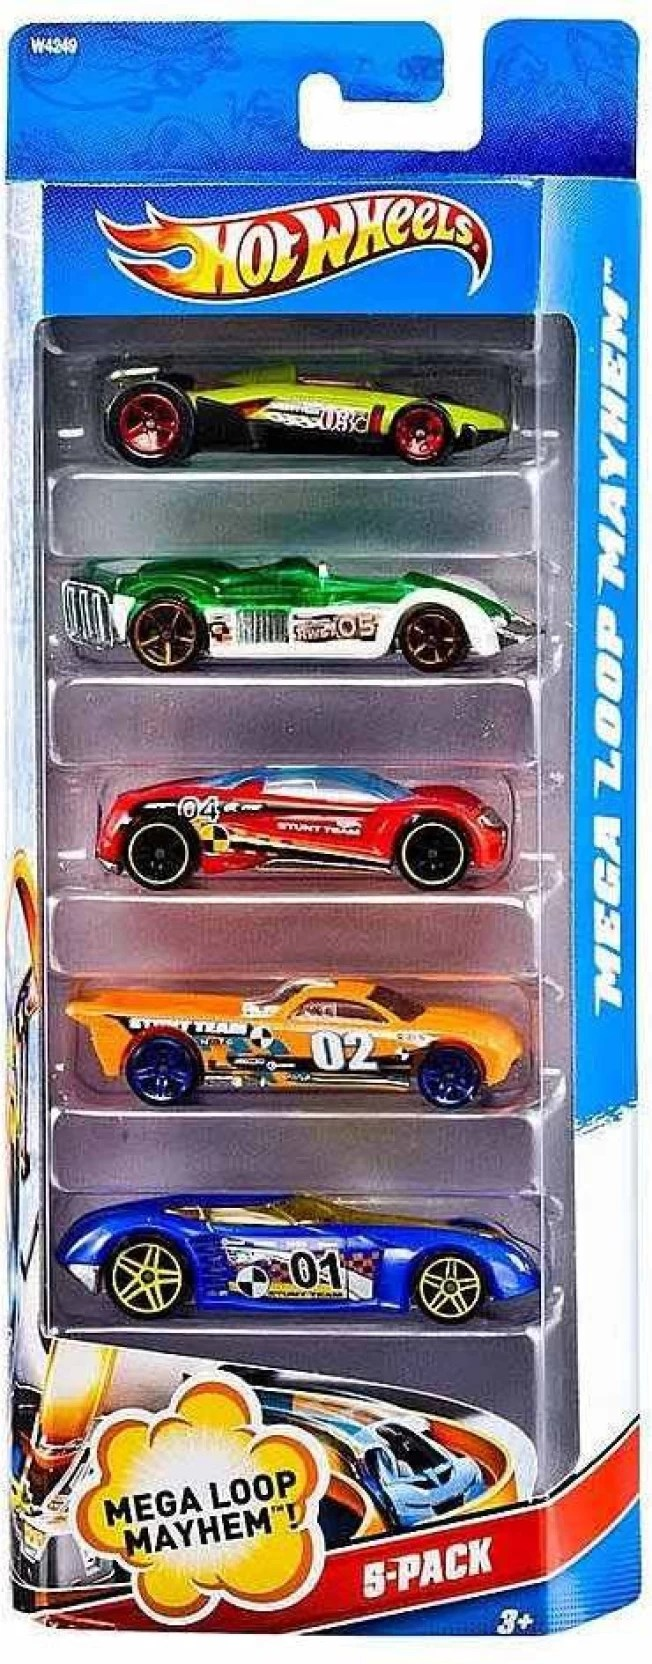 Hot Wheels Five Car Assortment Pack   Five Car Assortment Pack     ADD TO CART